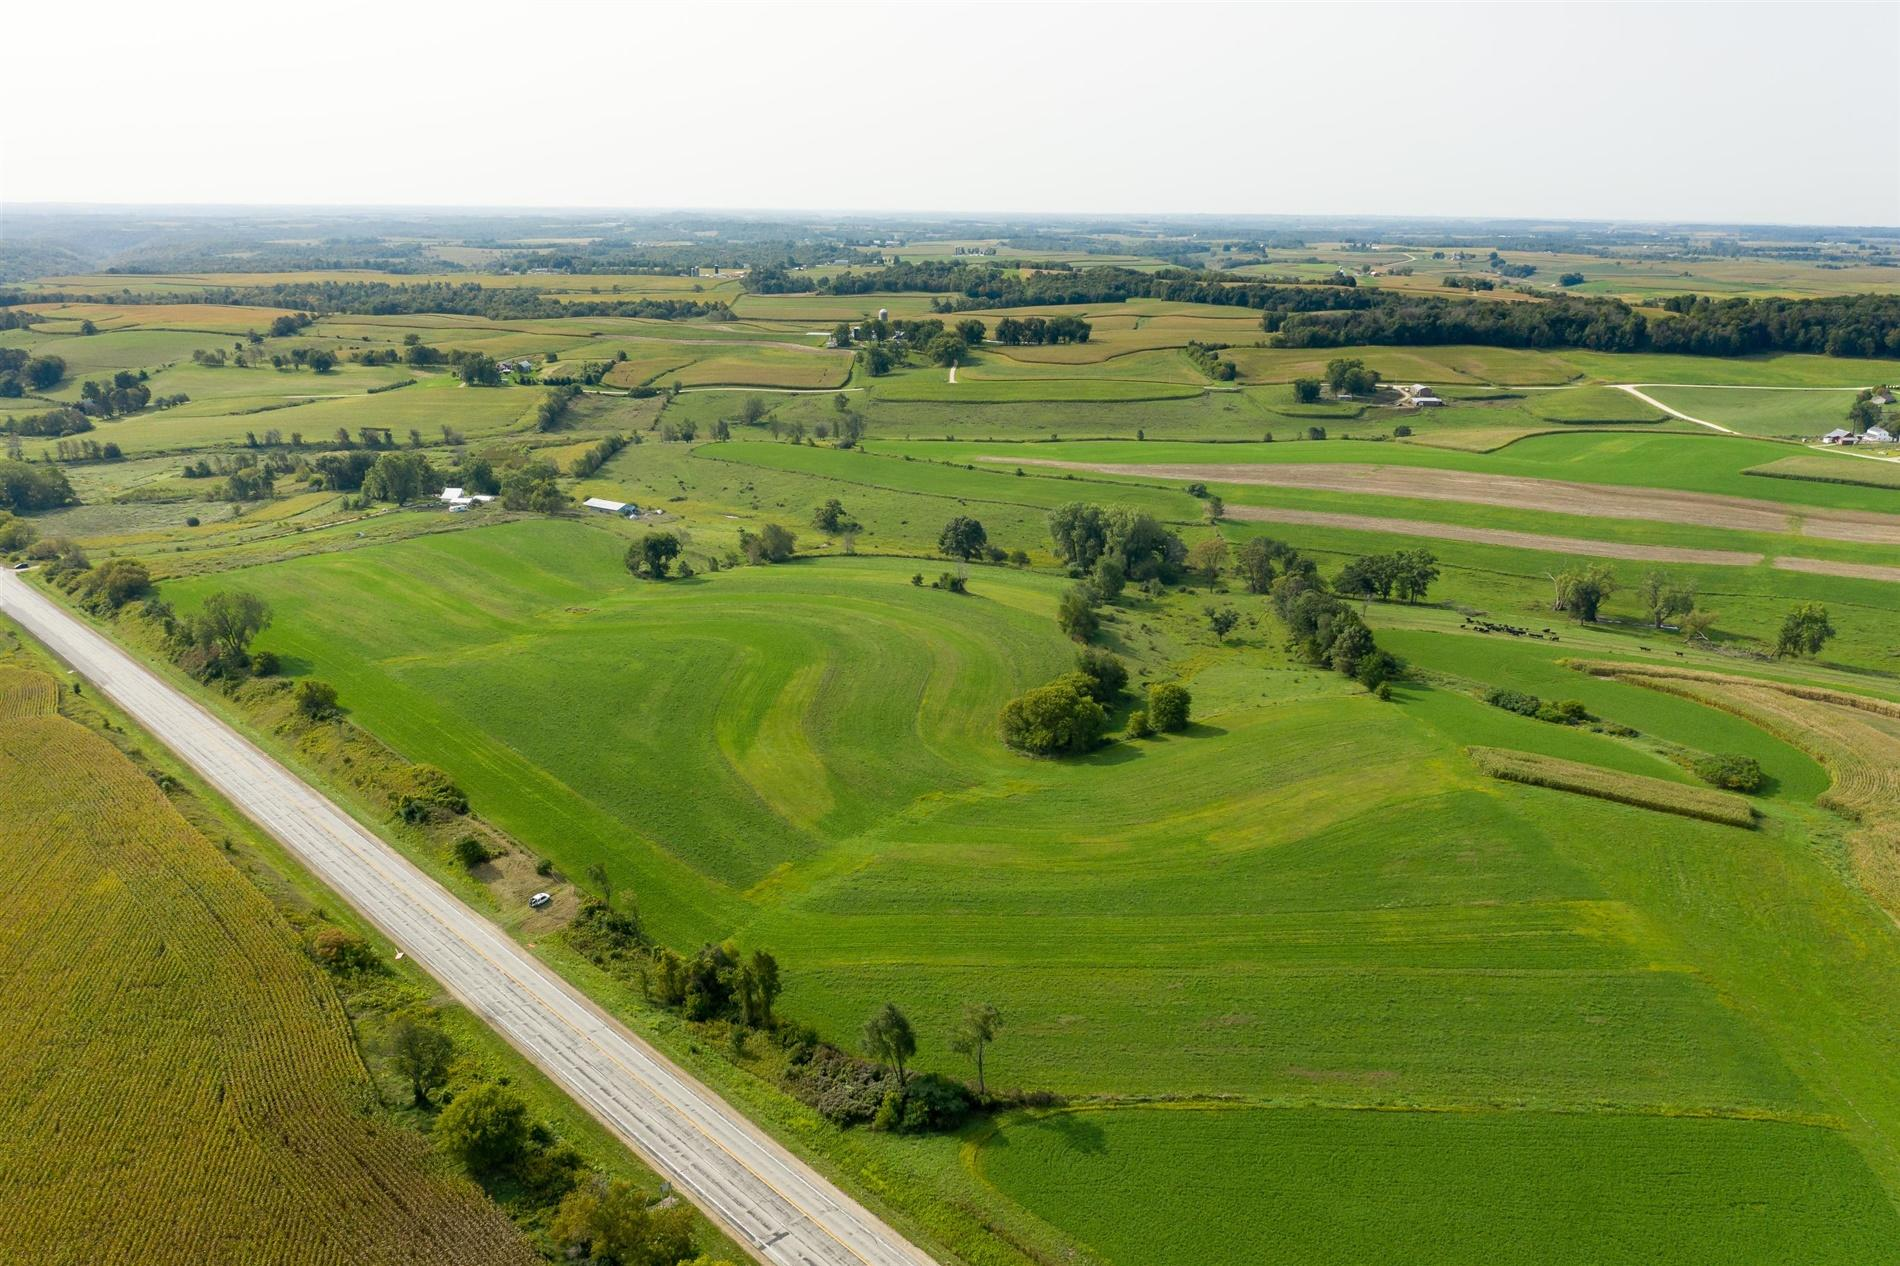 0000 US Hwy 14, Franklin, Wisconsin 54665, ,Vacant Land,For Sale,US Hwy 14,1710205